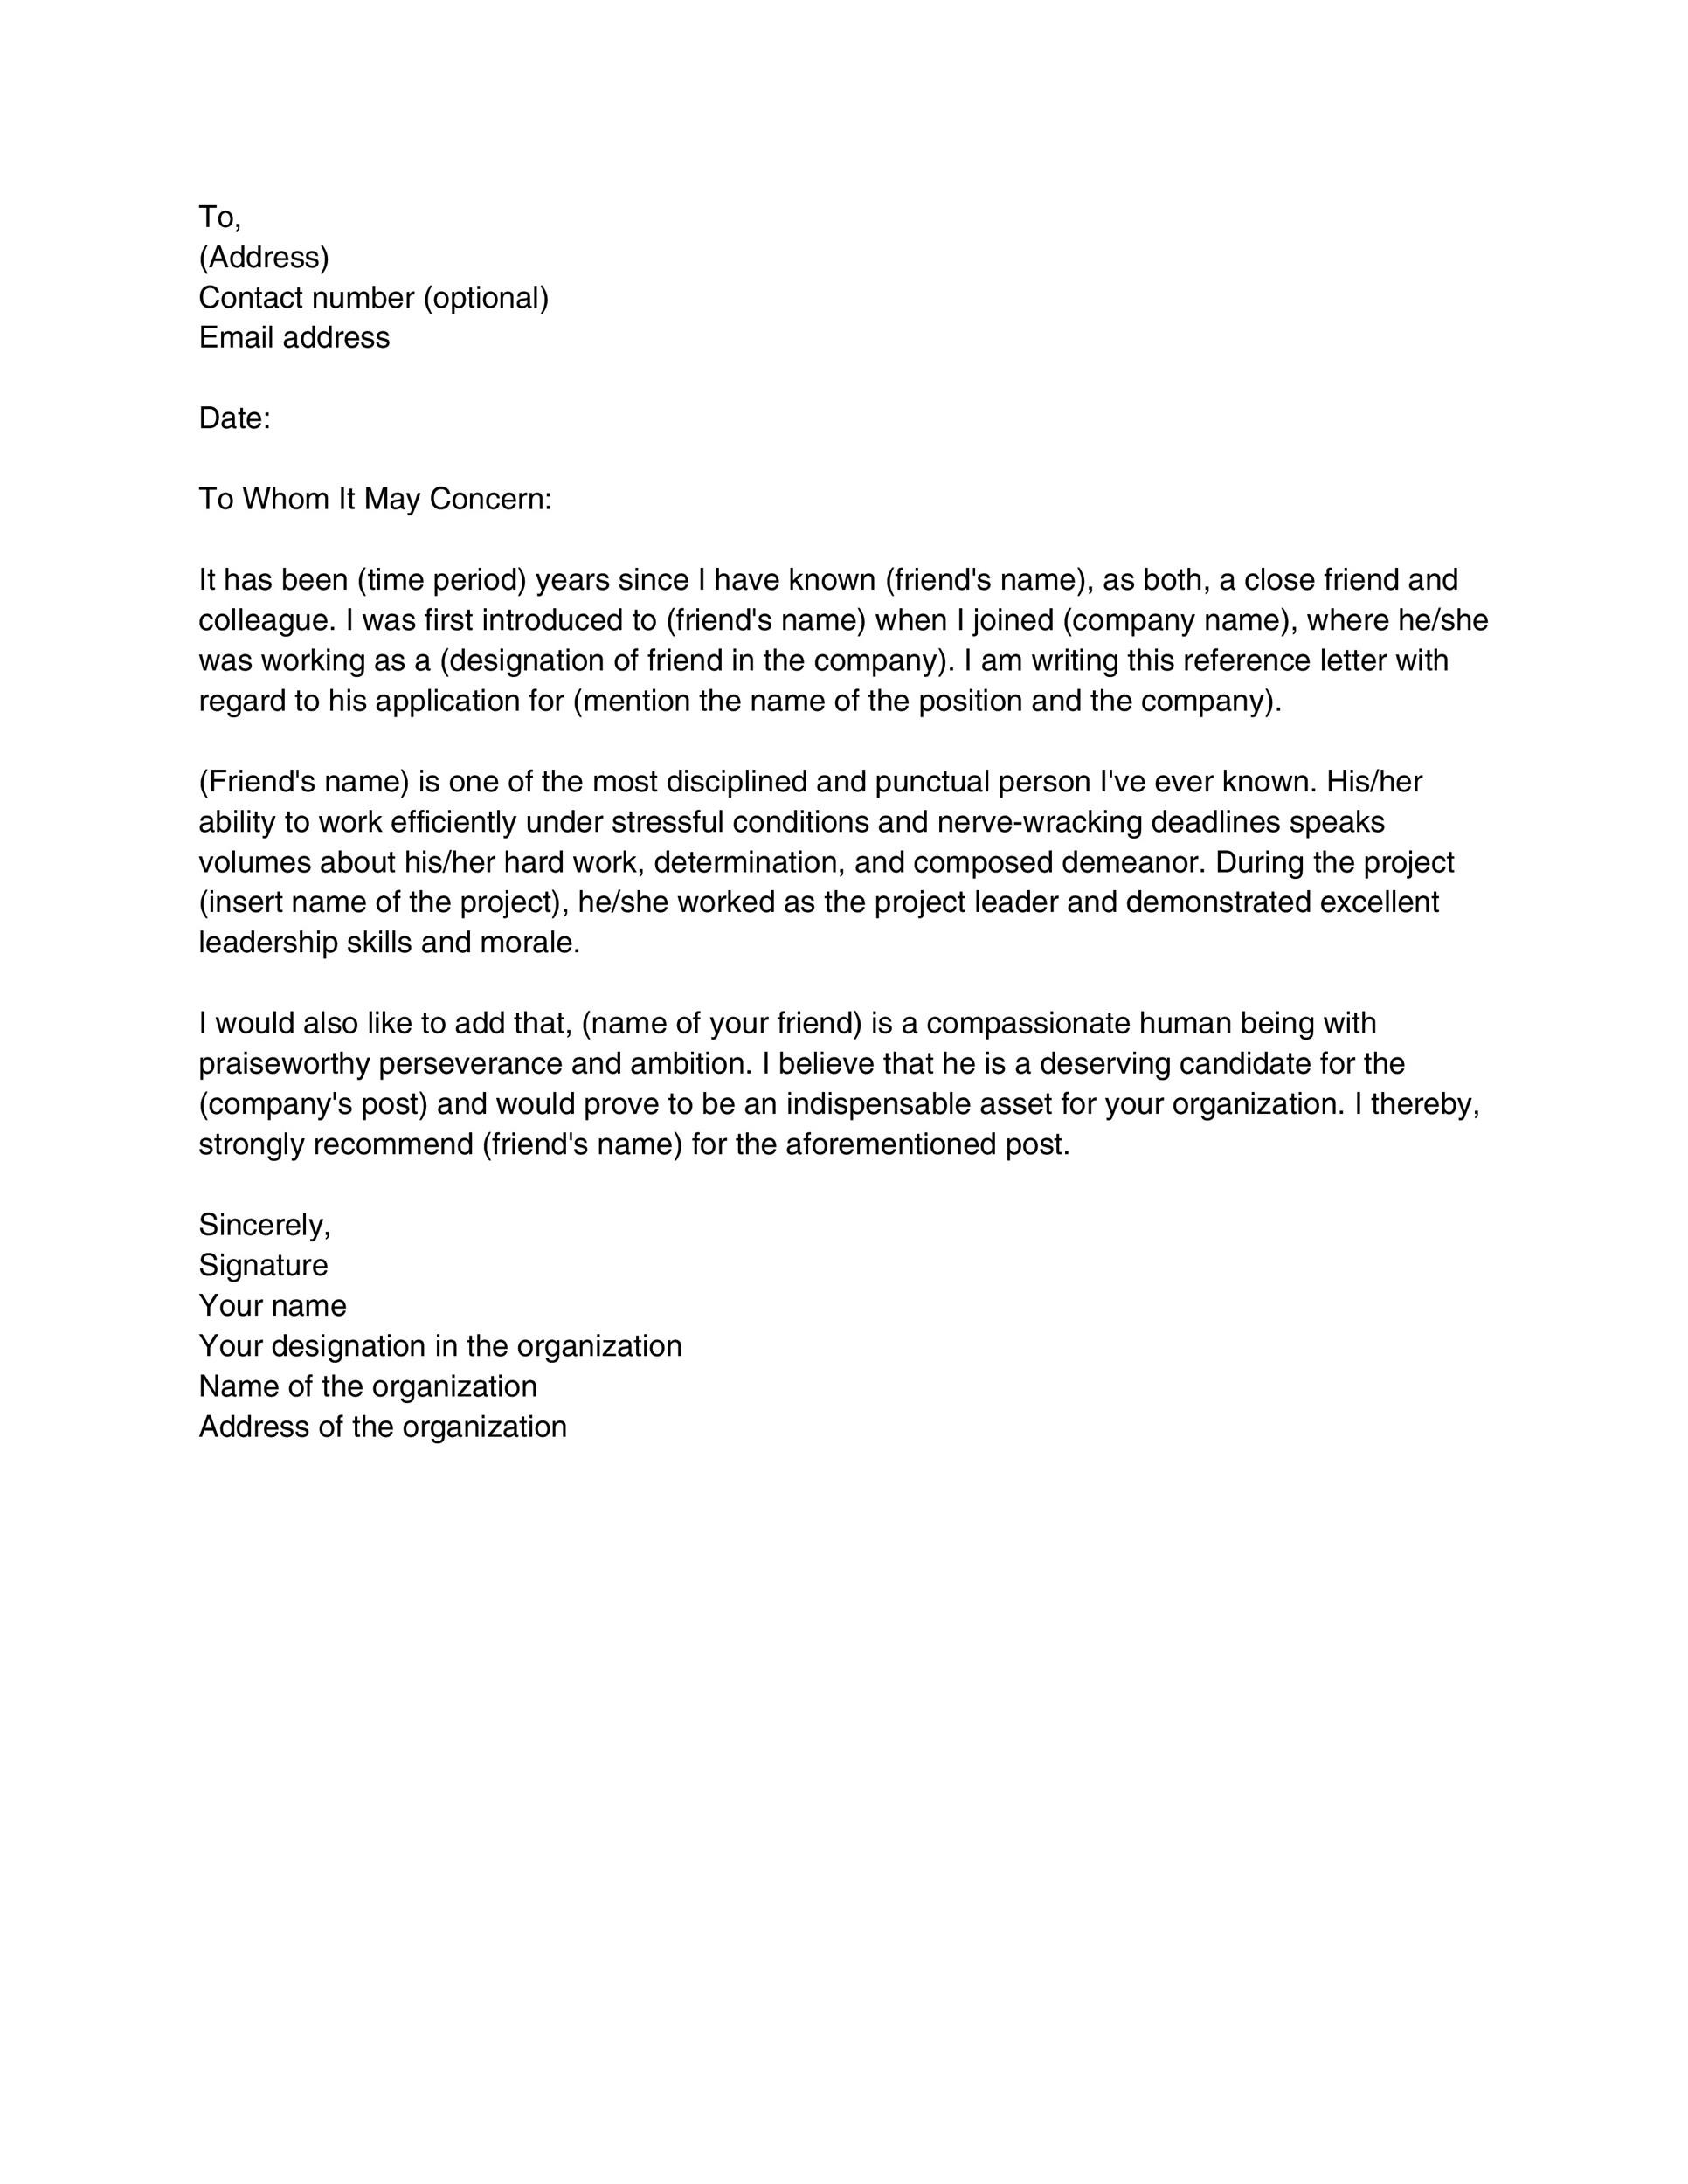 Recommendation Letter For A Friend Template from templatelab.com